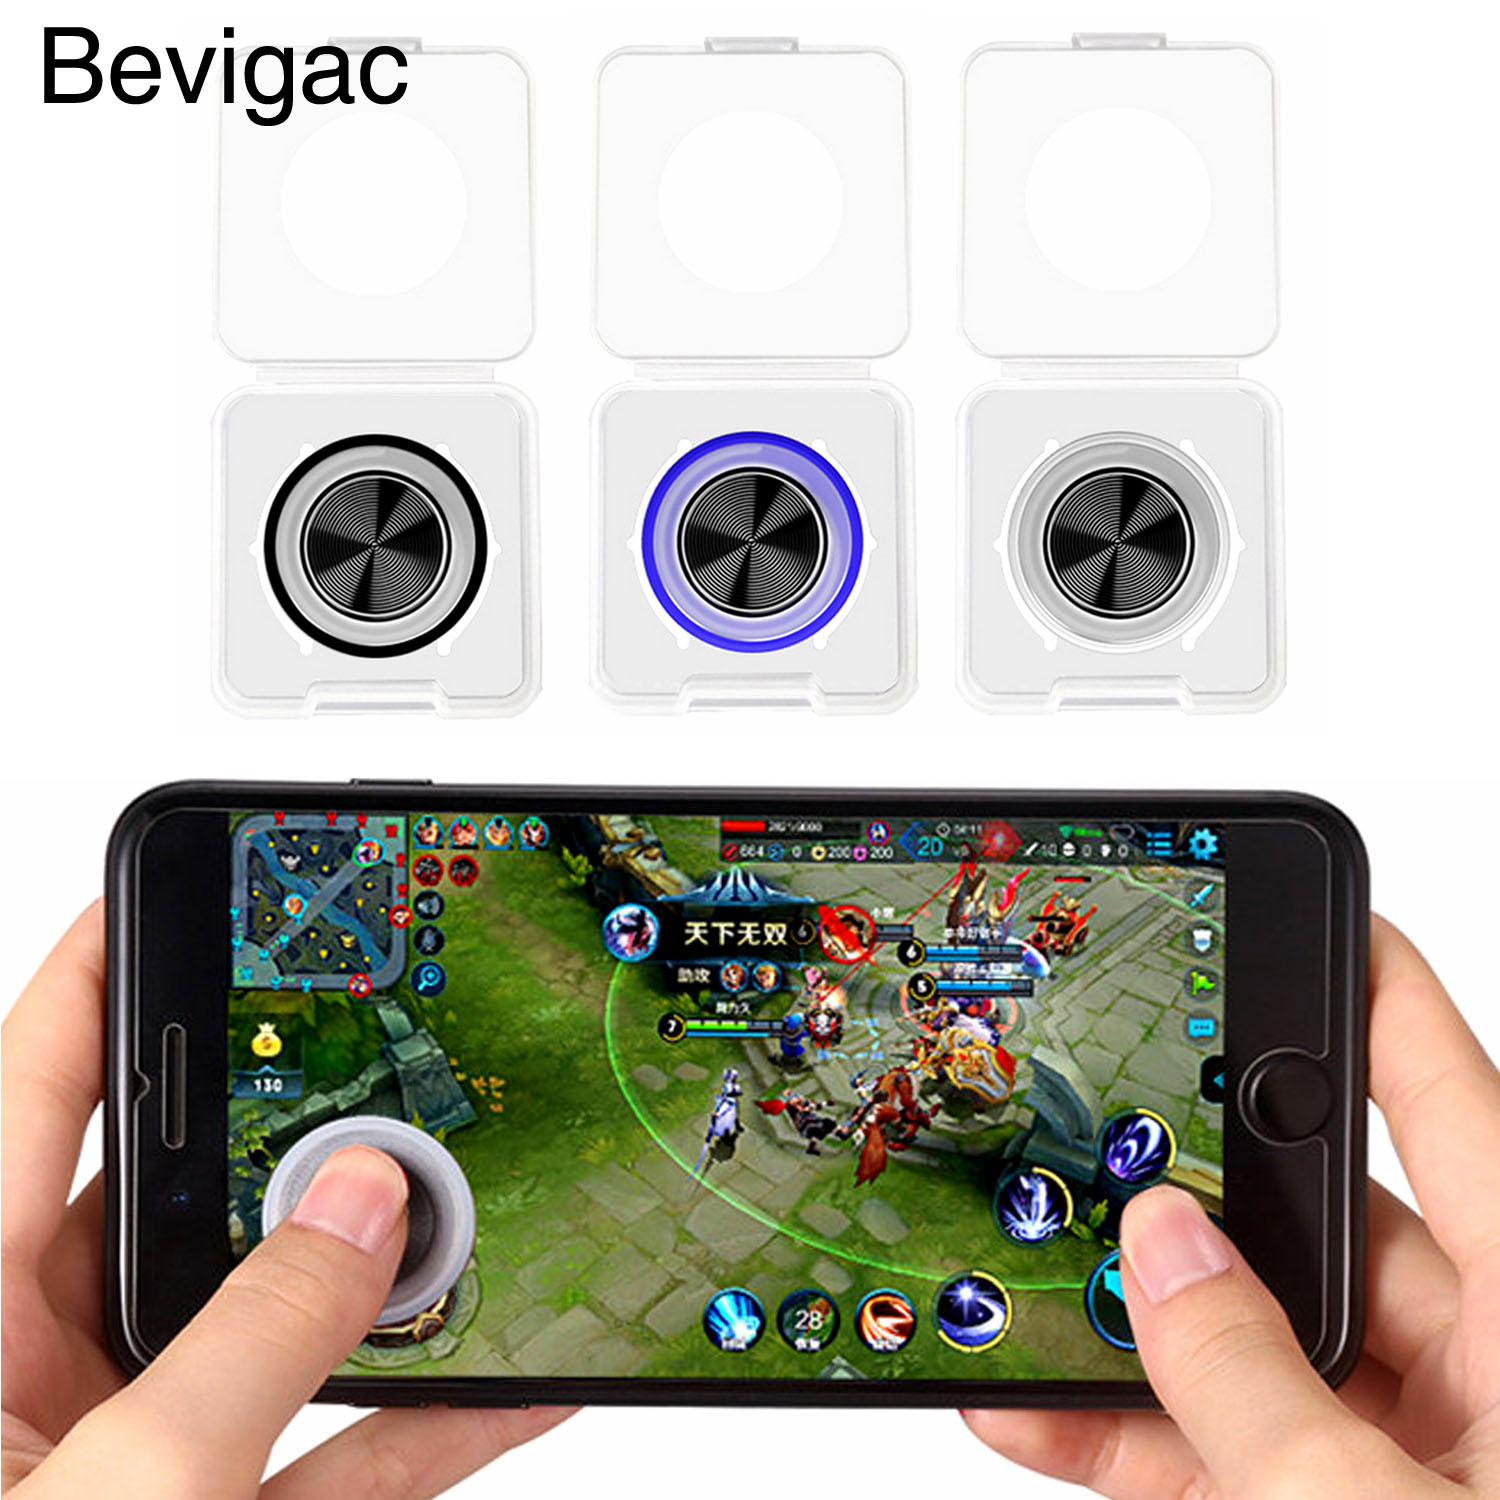 Bevigac Mobile Game Joystick Rocker Touch Screen Joypad Controller with Dust-proof Storage Box for iPhone iPad Samsung Tablet image